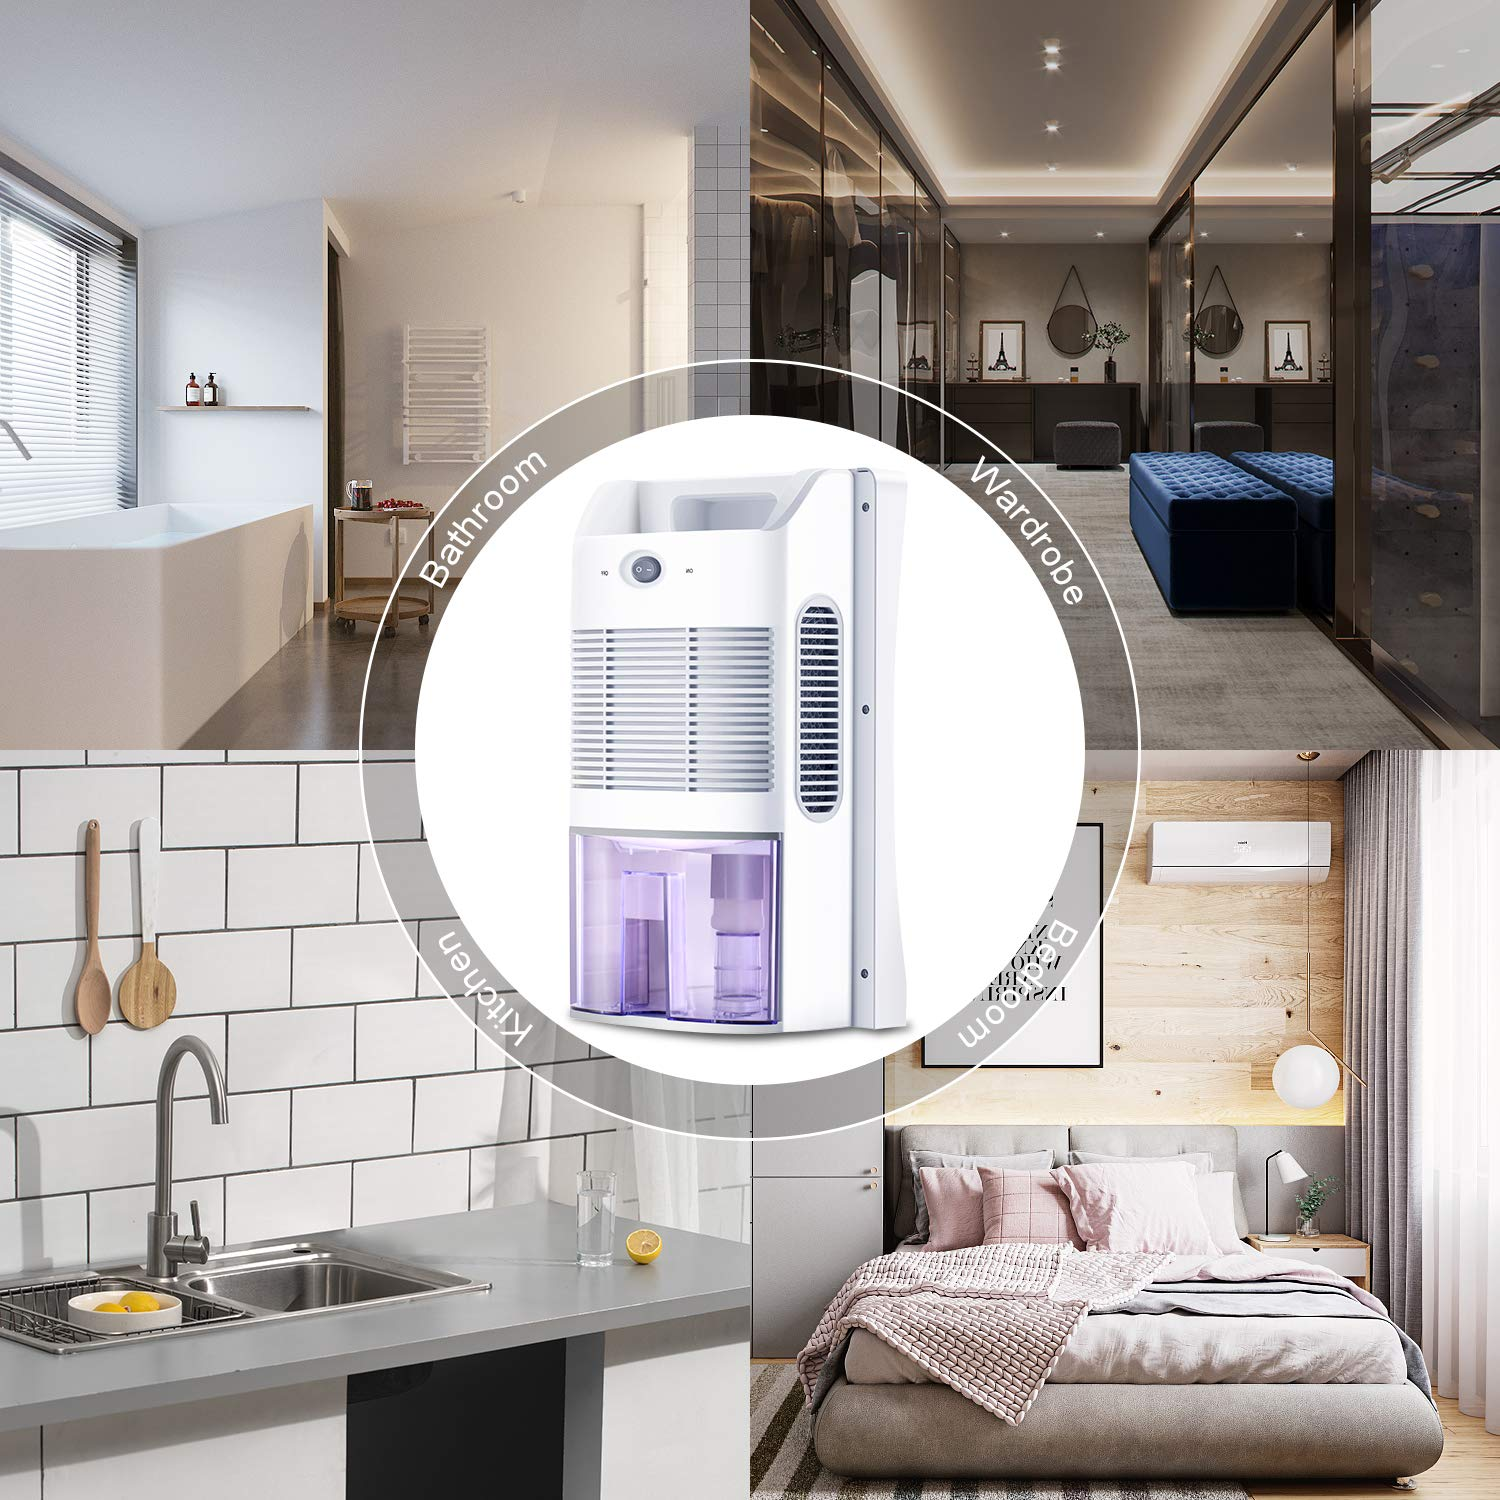 Portable Low Weight Whisper-Quiet Mini Electric Home Dehumidifier for Moisture Mould Damp in Bedroom 300 sq ft Gocheer Dehumidifier with 2000ml Water Tank Bathroom Office Garage,Garage